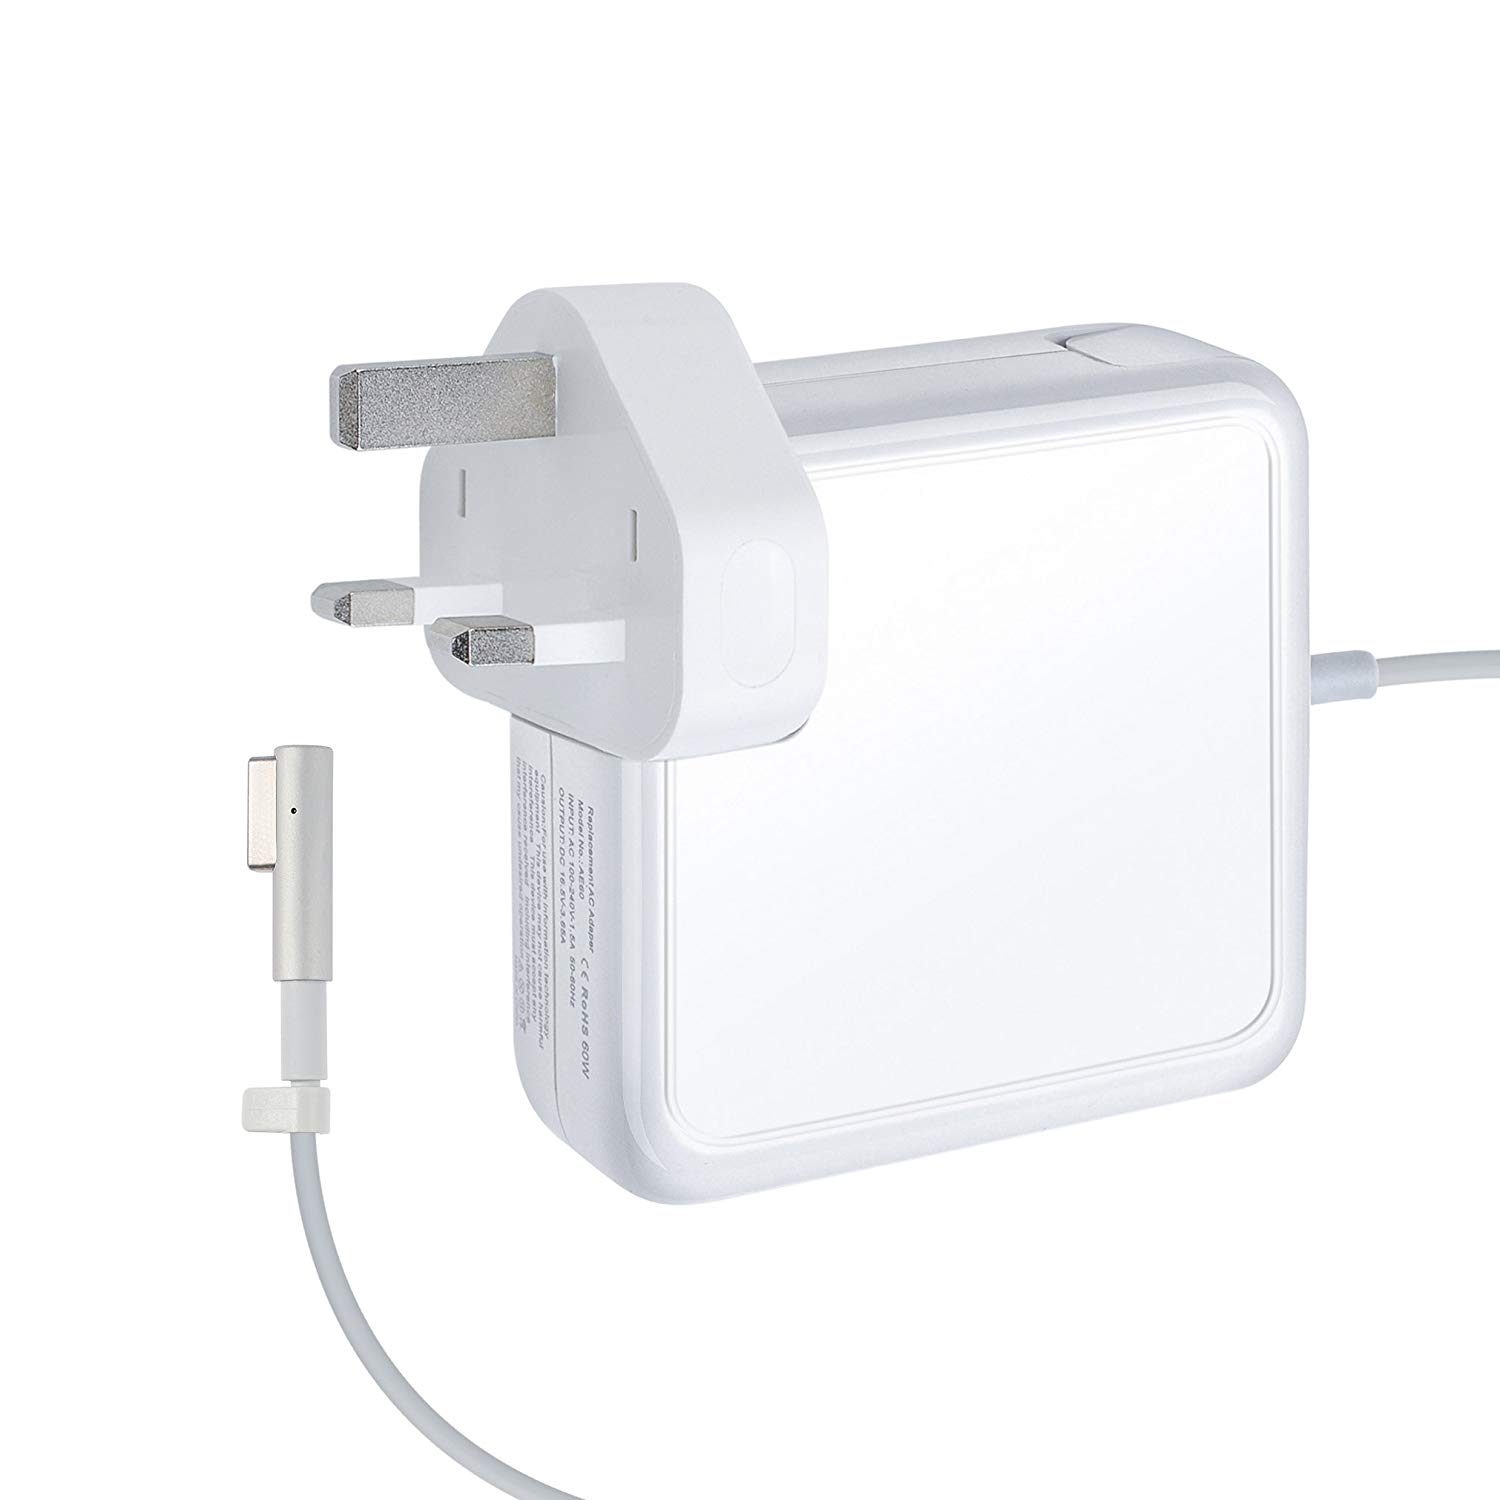 Used Macbook Pro Charger: Apple MacBook Pro Charger 60W